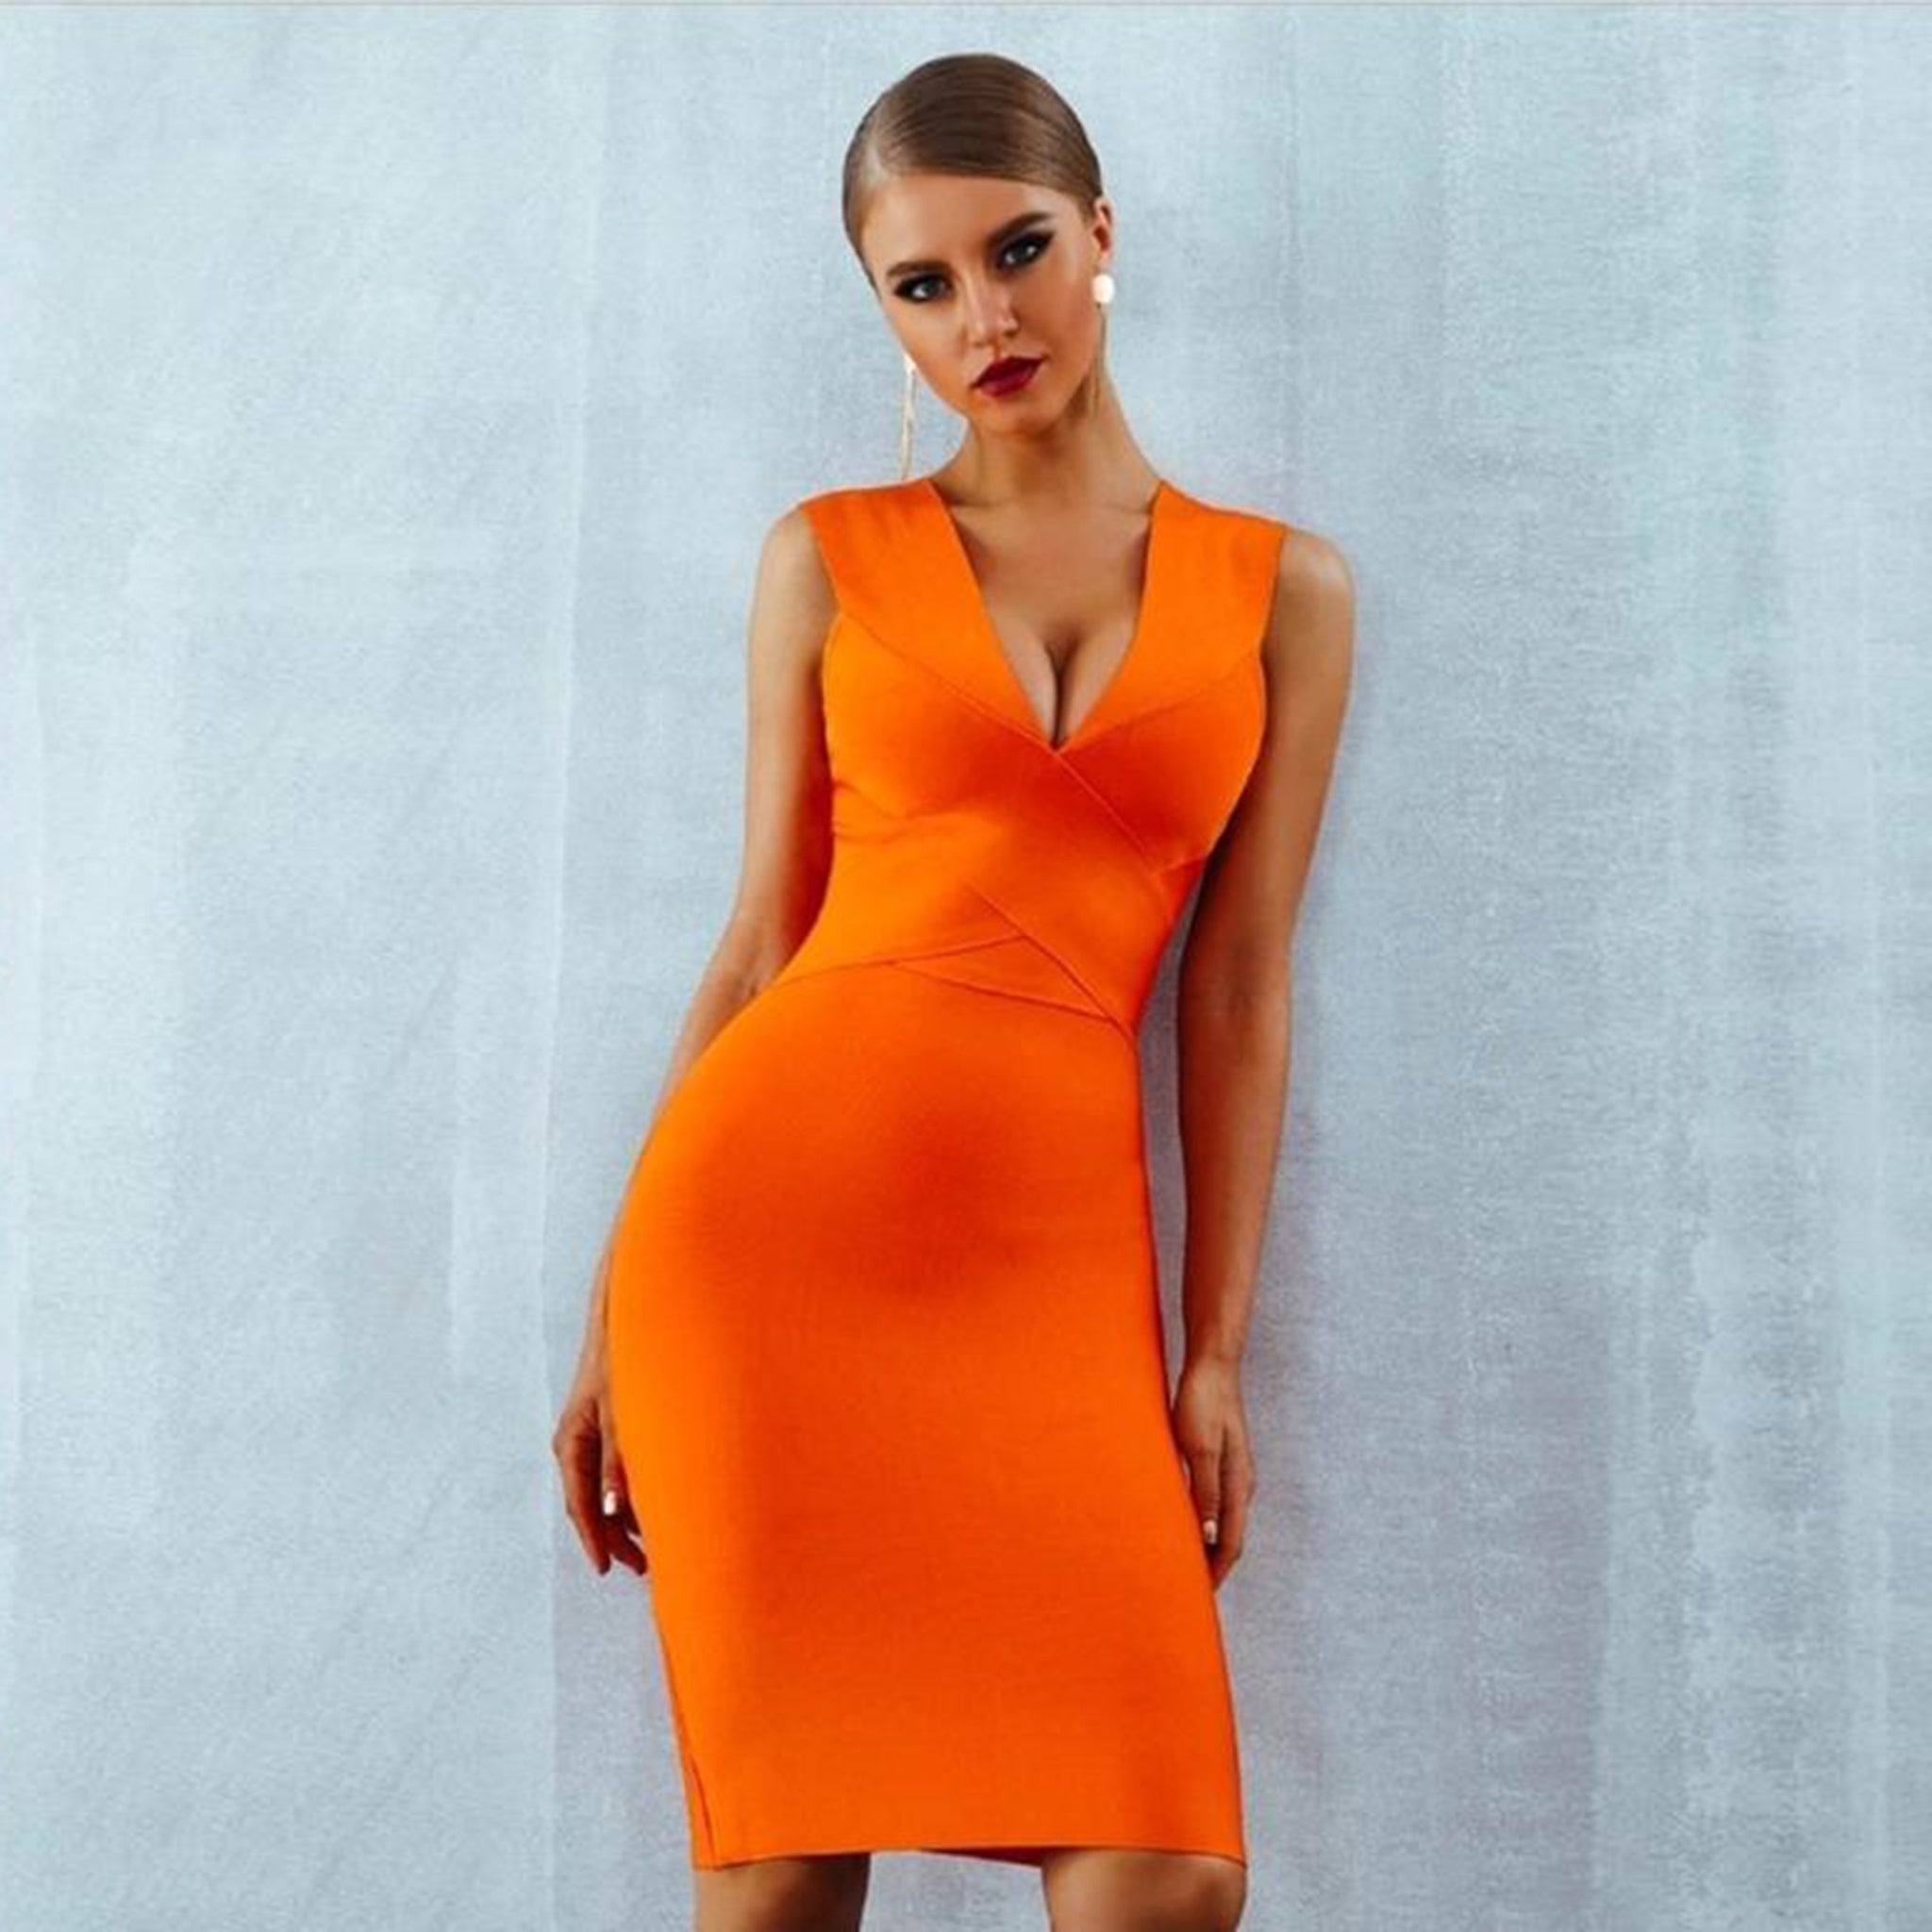 Orange Bandage Cross Front Dress - Top Glam Shop